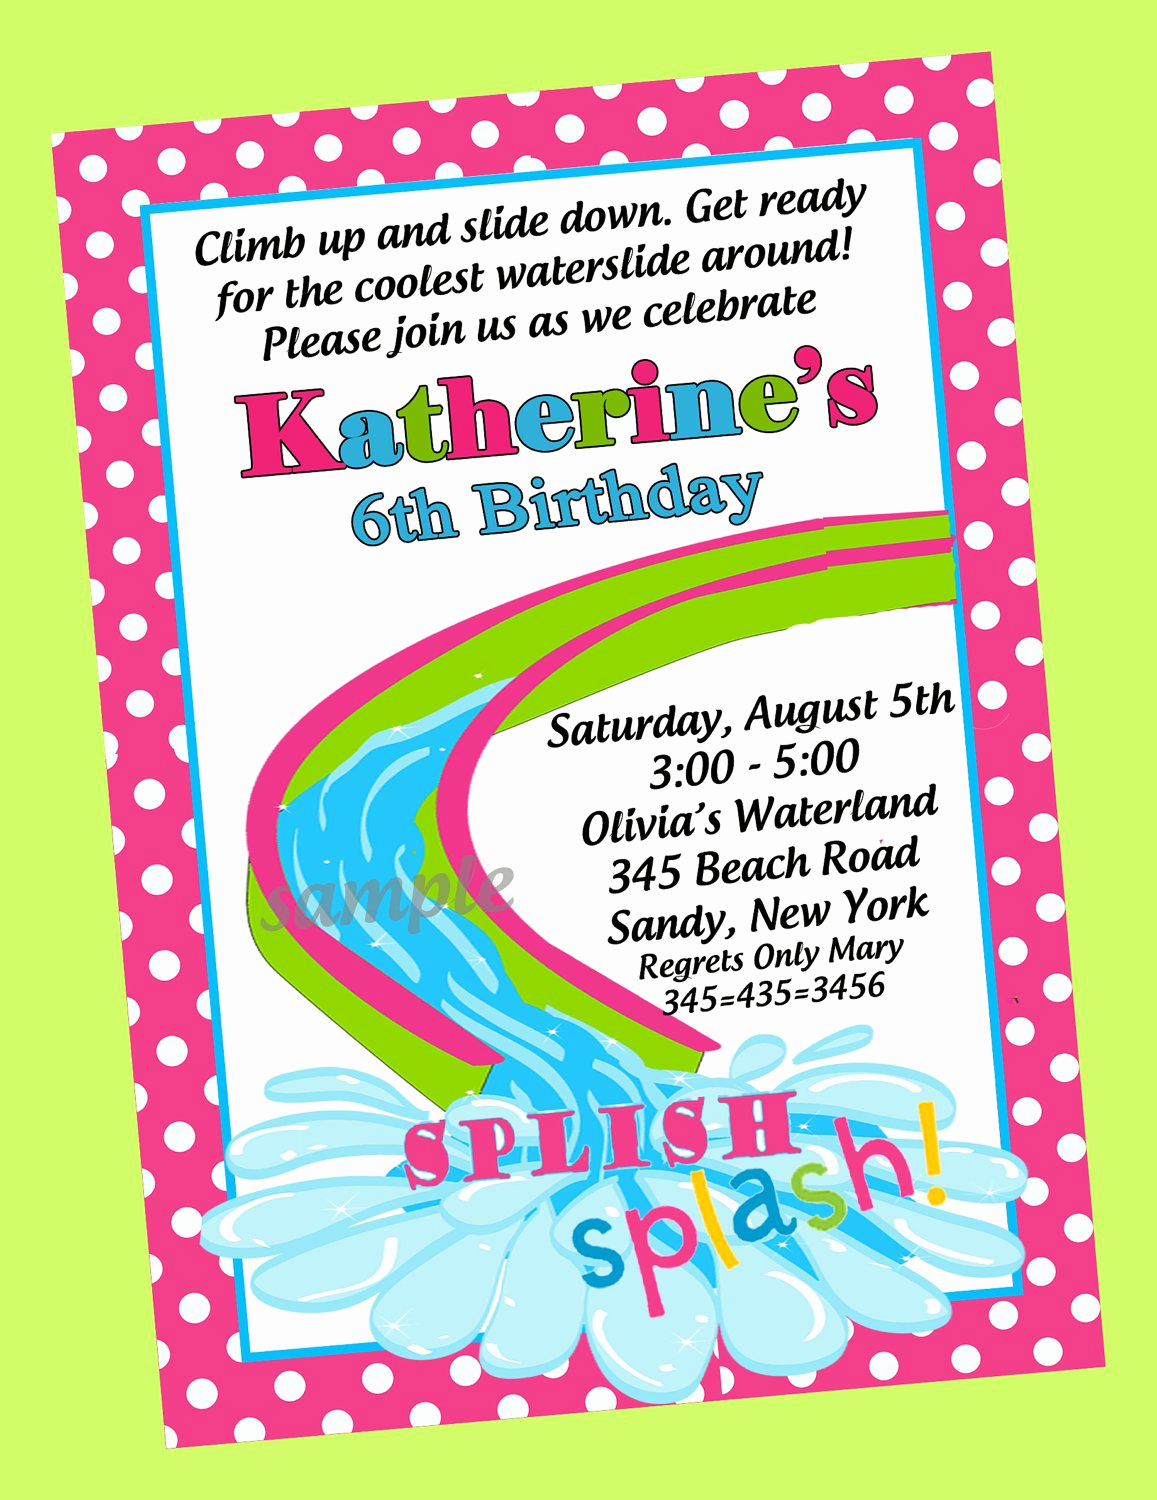 Birthday Pool Party Invitation Wording Awesome Birthday Pool Party Invitation Wording